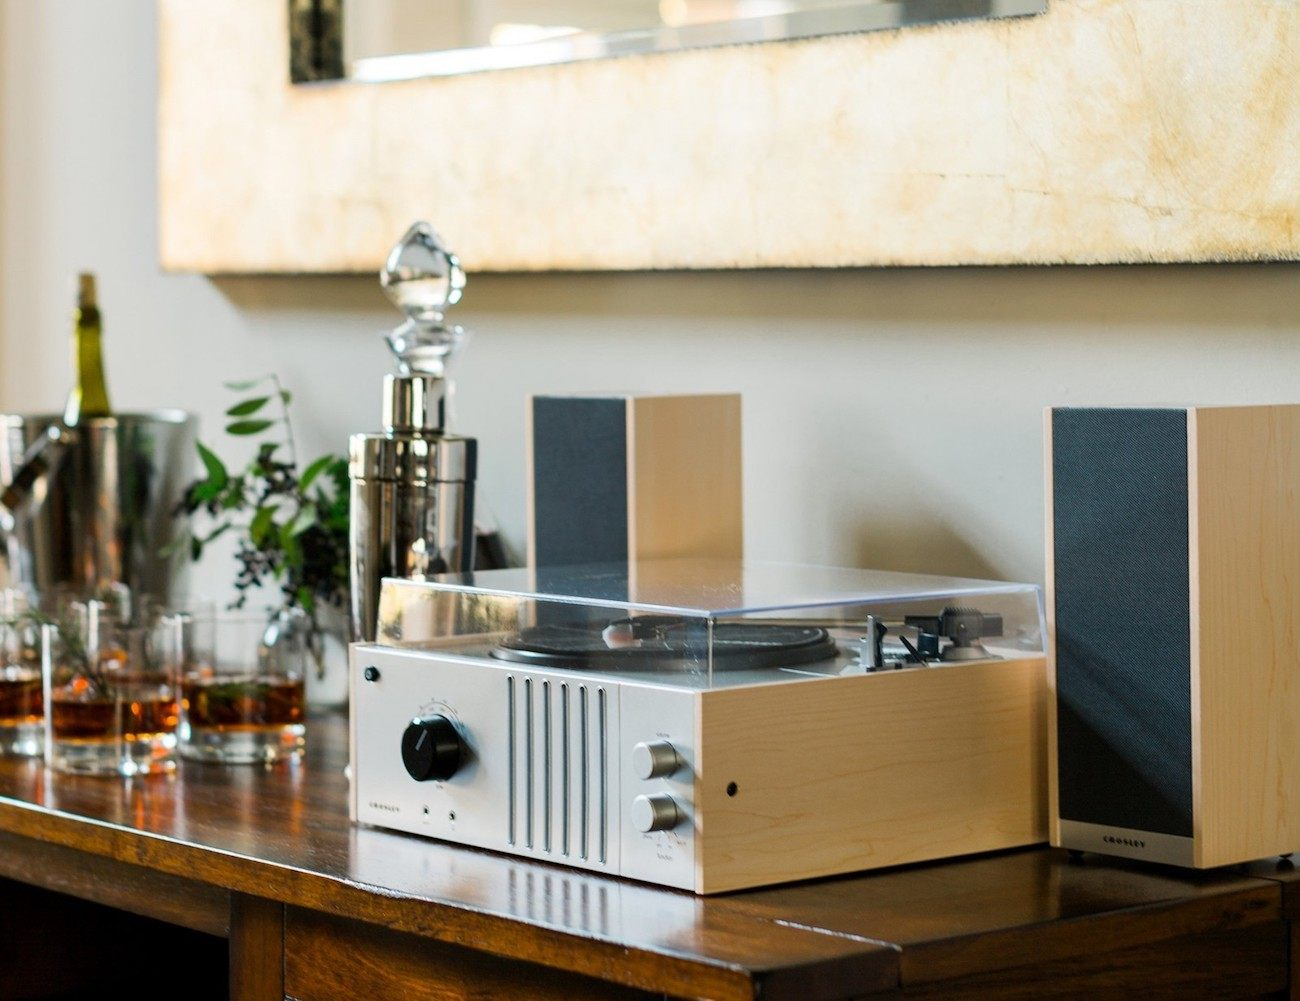 Turntable+Shelf+System